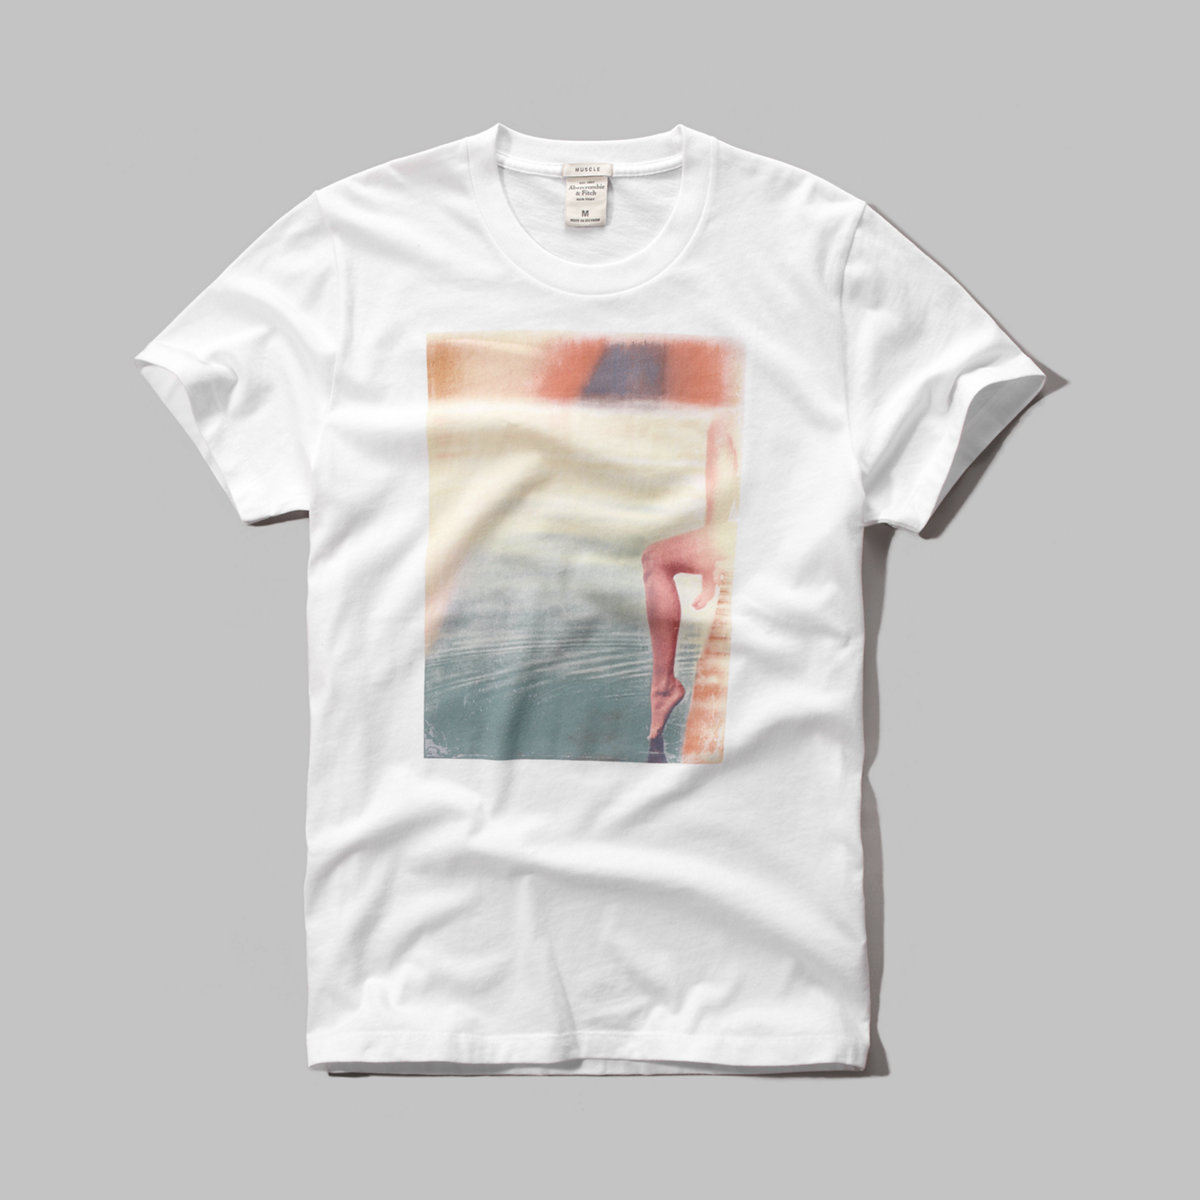 Poolside Photoreal Graphic Tee